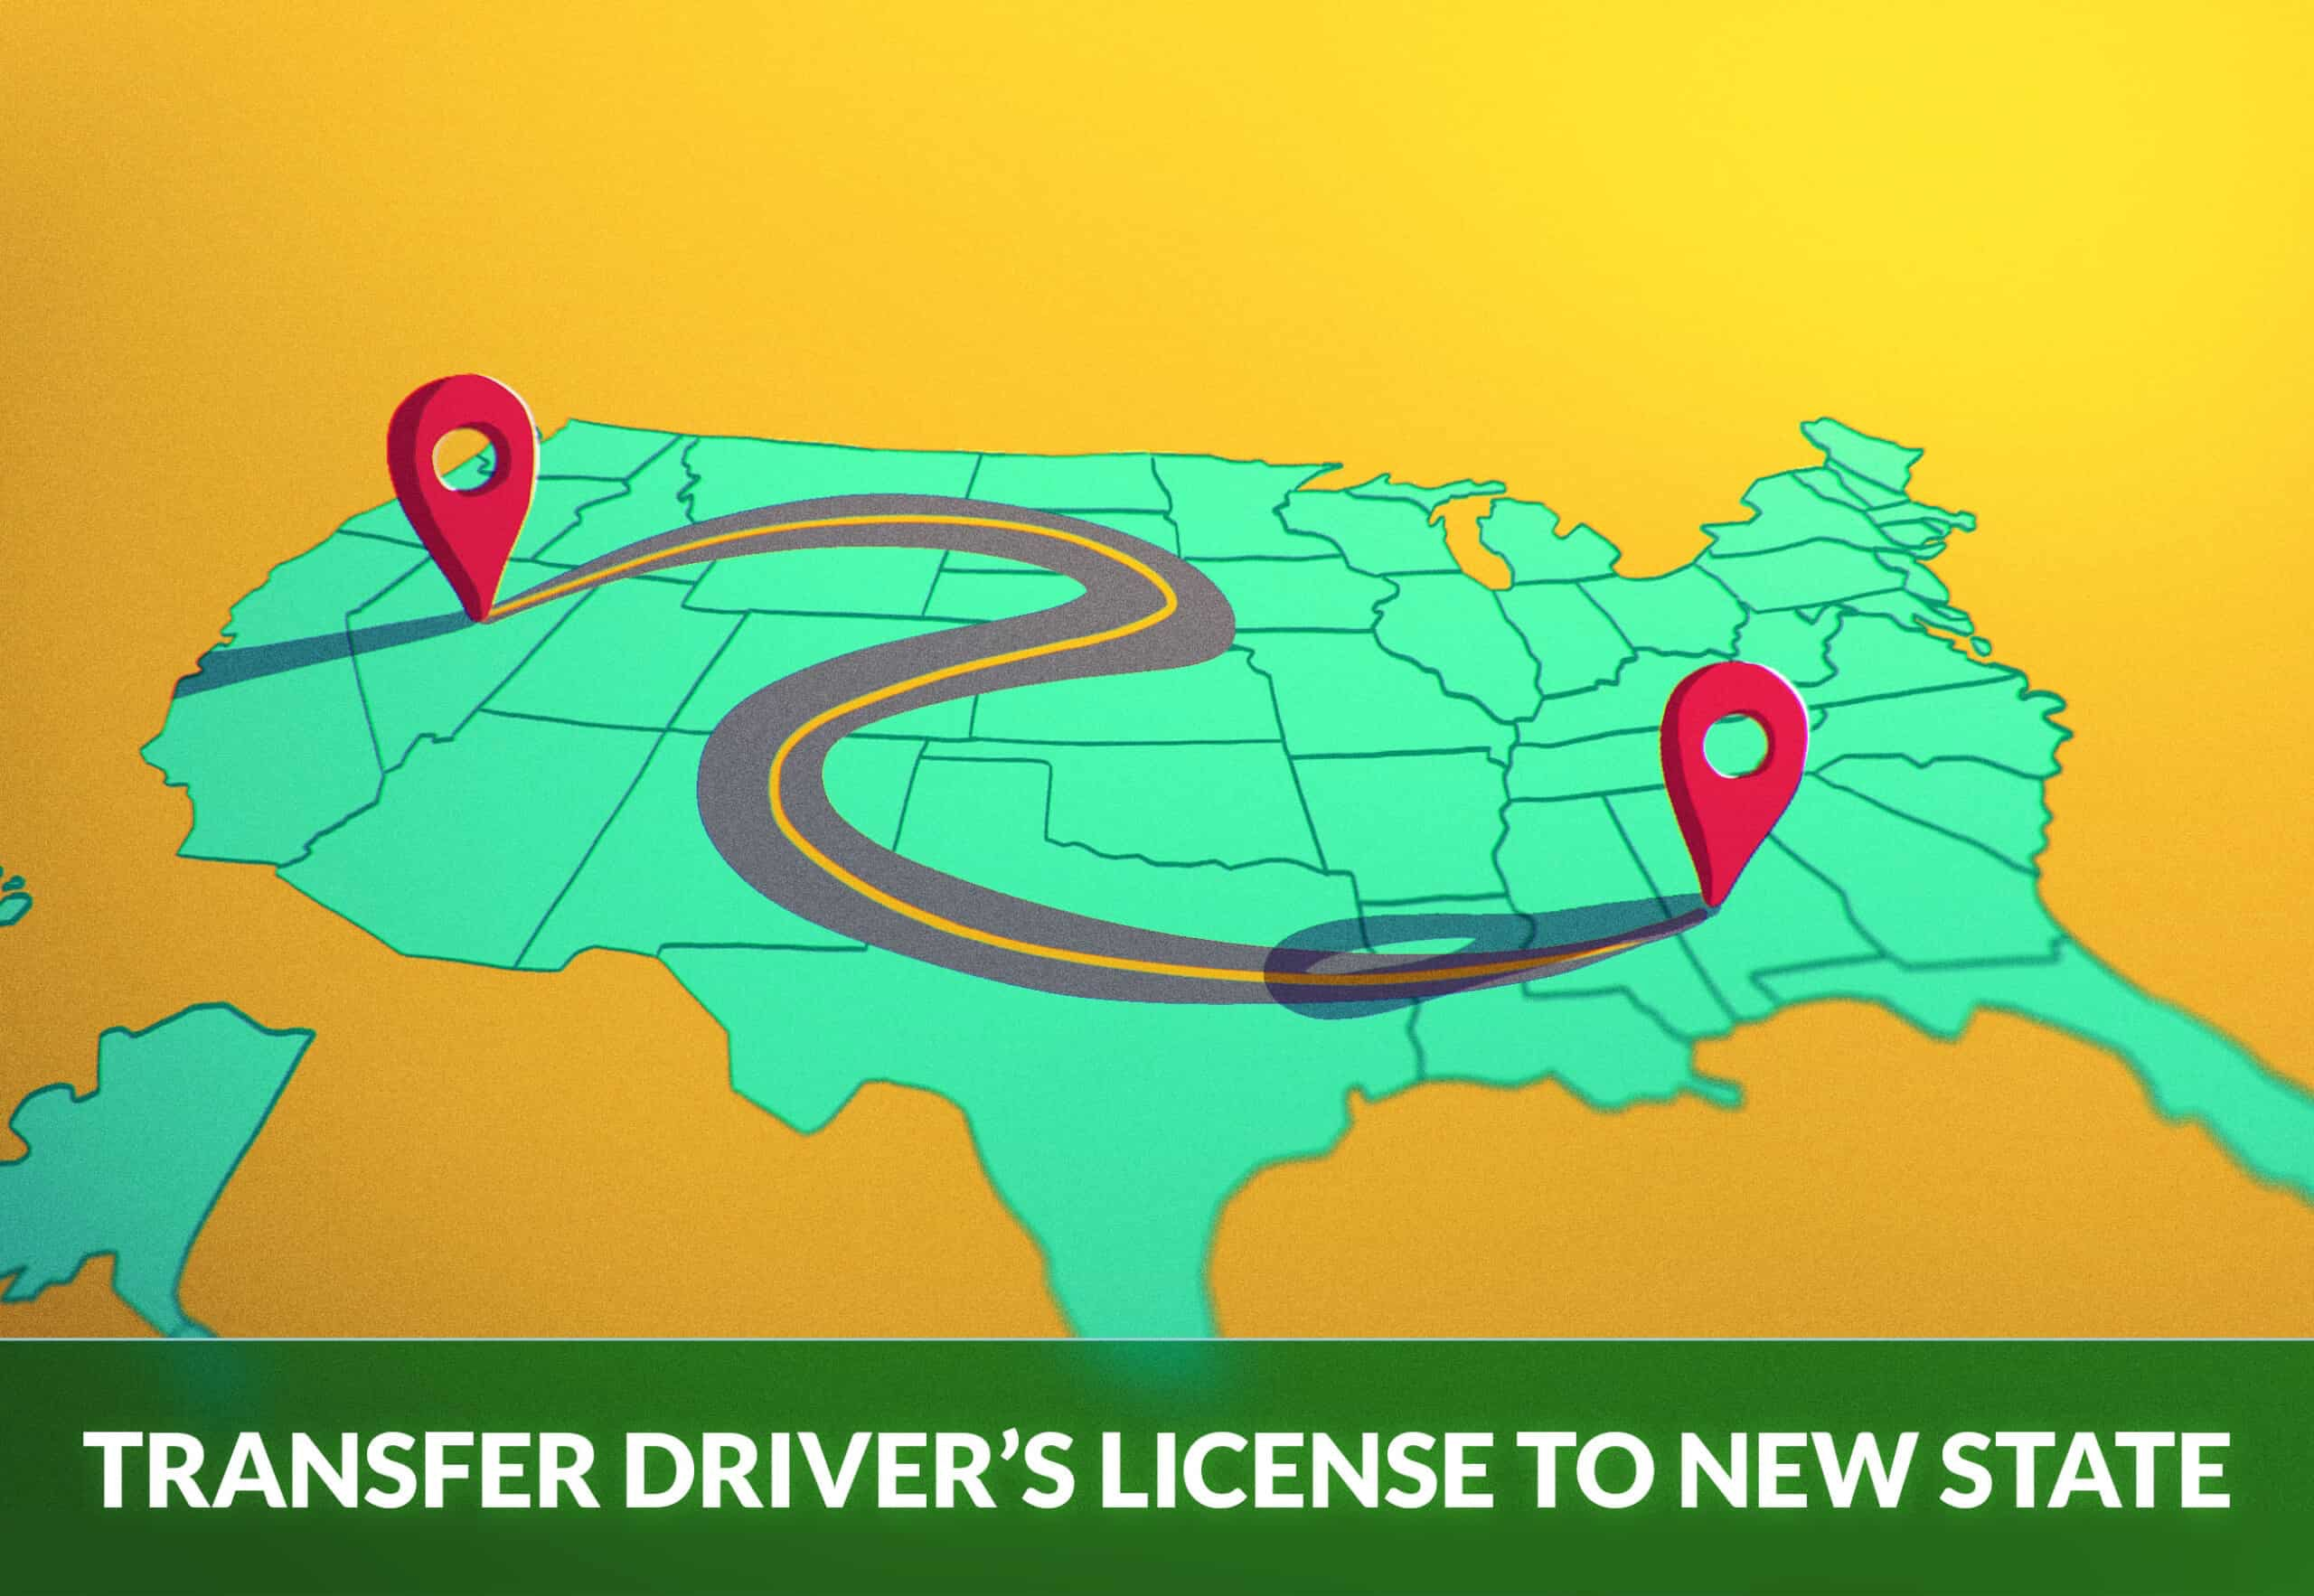 TRANSFER DRIVER'S LICENSE TO NEW STATE